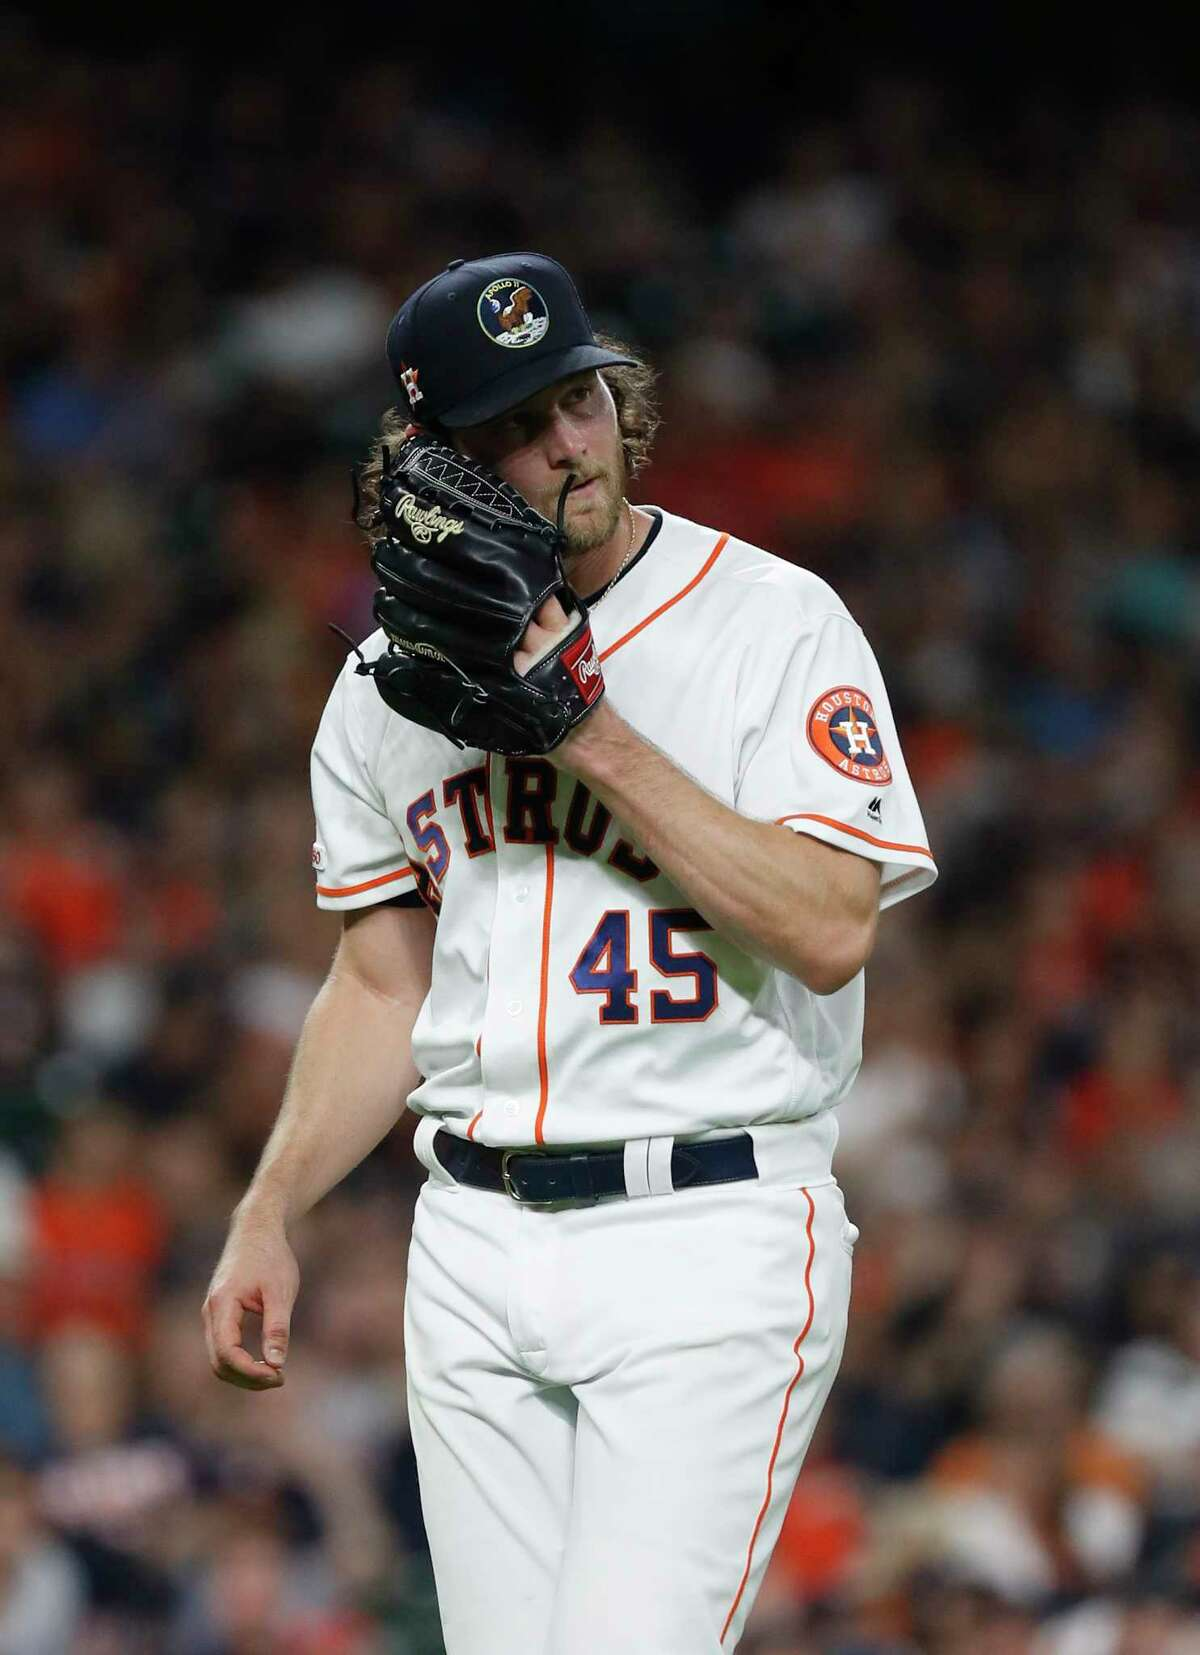 Houston Astros starting pitcher Gerrit Cole (45) reacts after striking out Oakland Athletics Nick Martini to end the sixth inning of an MLB baseball game at Minute Maid Park, Monday, July 22, 2019.